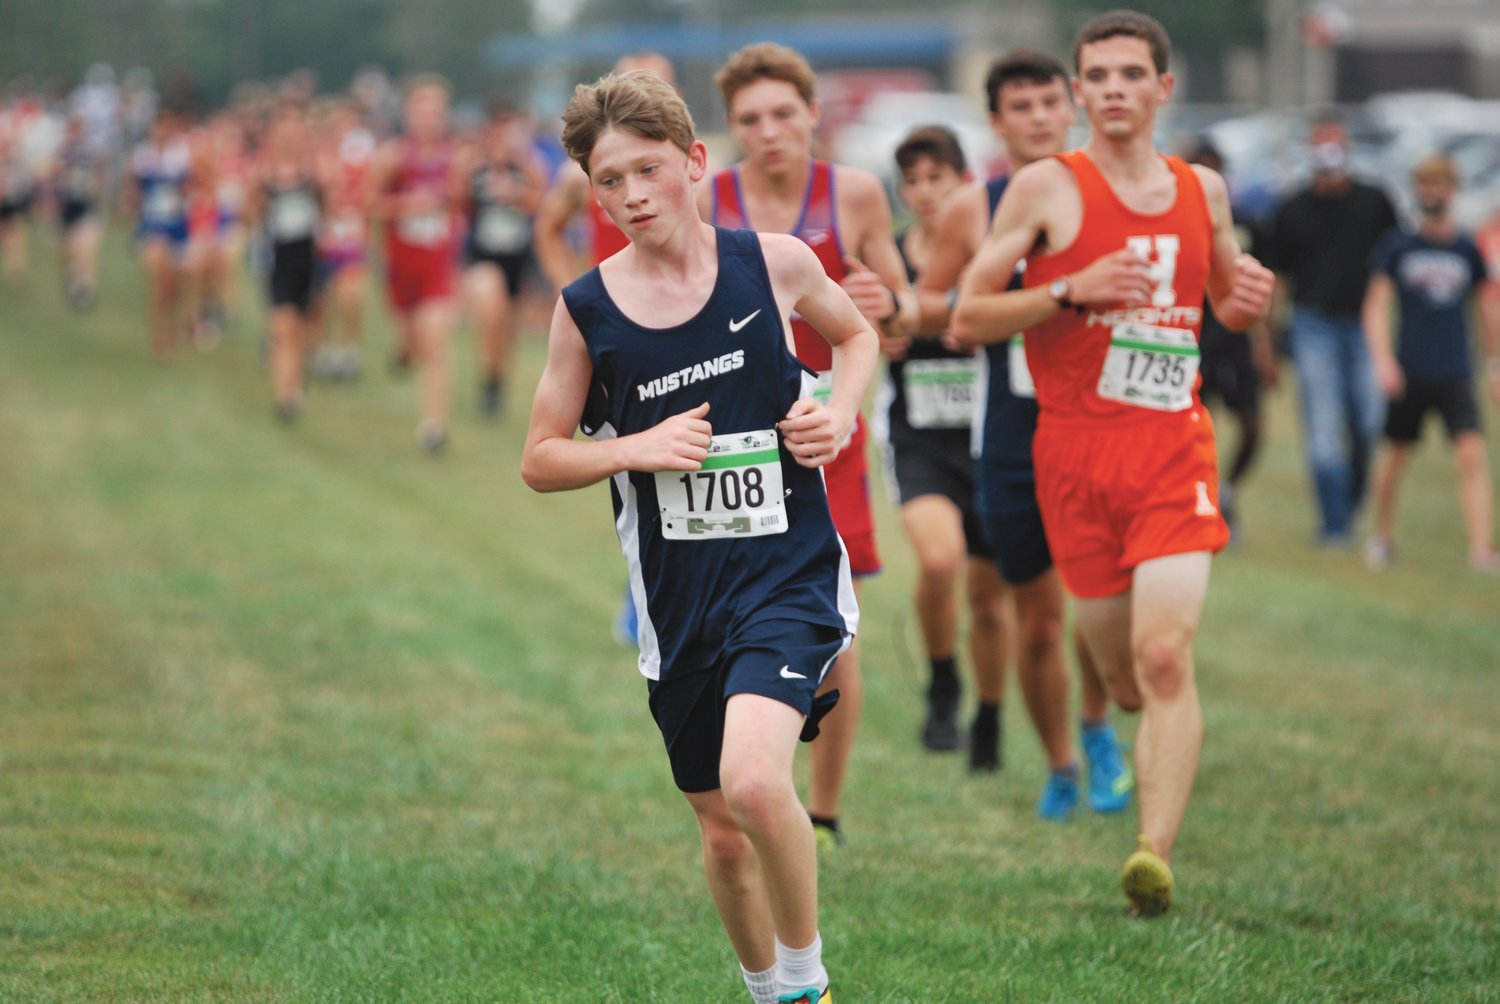 Hayden Klerr placed 37th in a time of 19:58 for Fountain Central on Thursday at the Charger Classic.